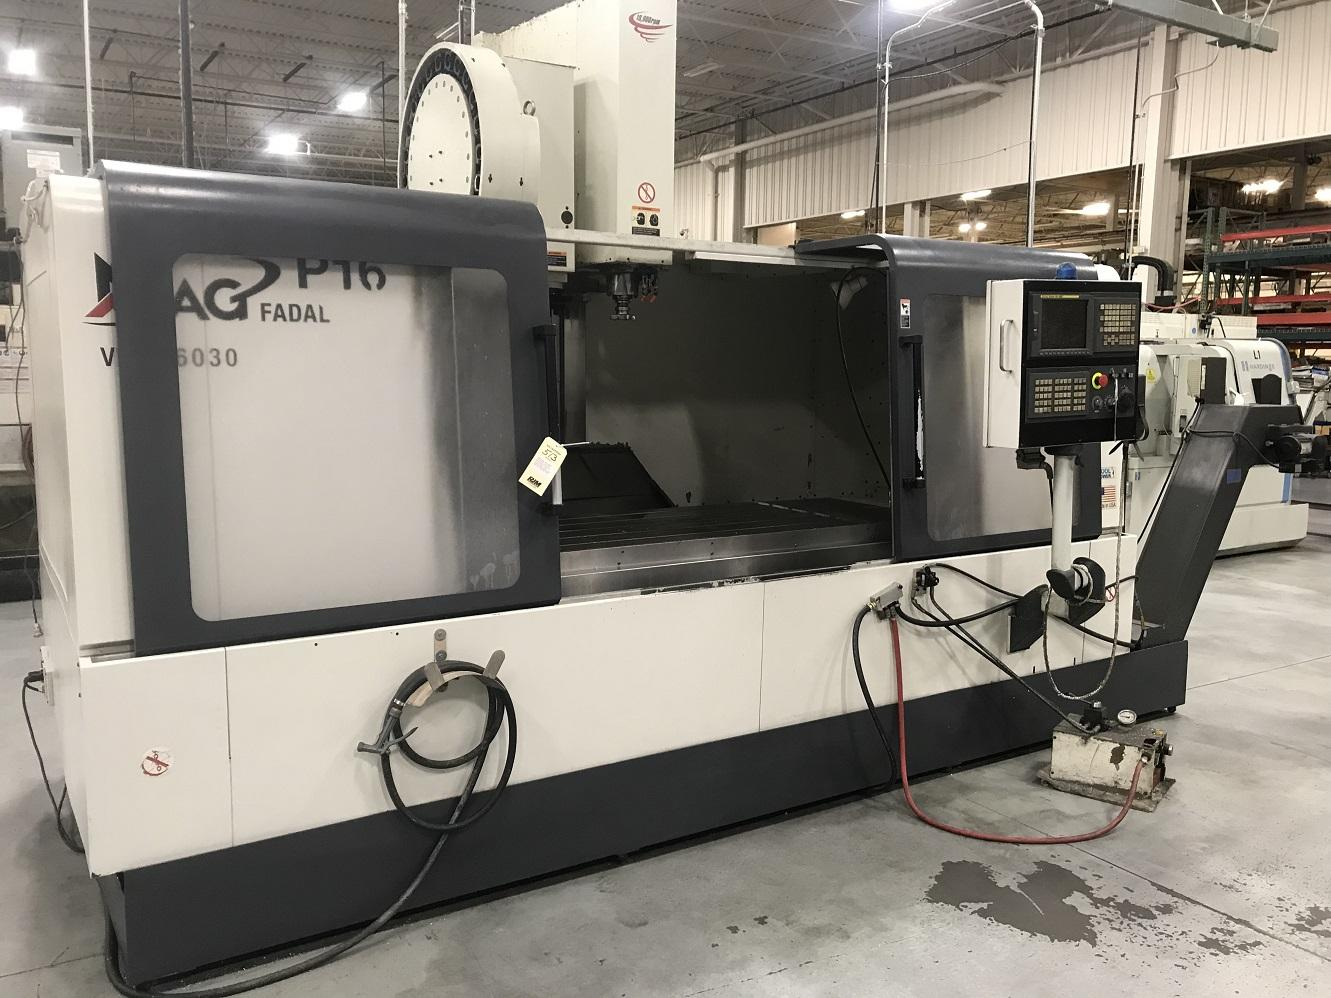 """Fadal 6030HT, Fanuc 18iMB, 60""""/30""""/30"""" Travels, 10K Spindle, CT40, 21 ATC, Coolant Thru Spindle, Rigid Tapping, Air/Oil Spindle, Chip Conveyor, Transformer, Handwheel, 2008"""